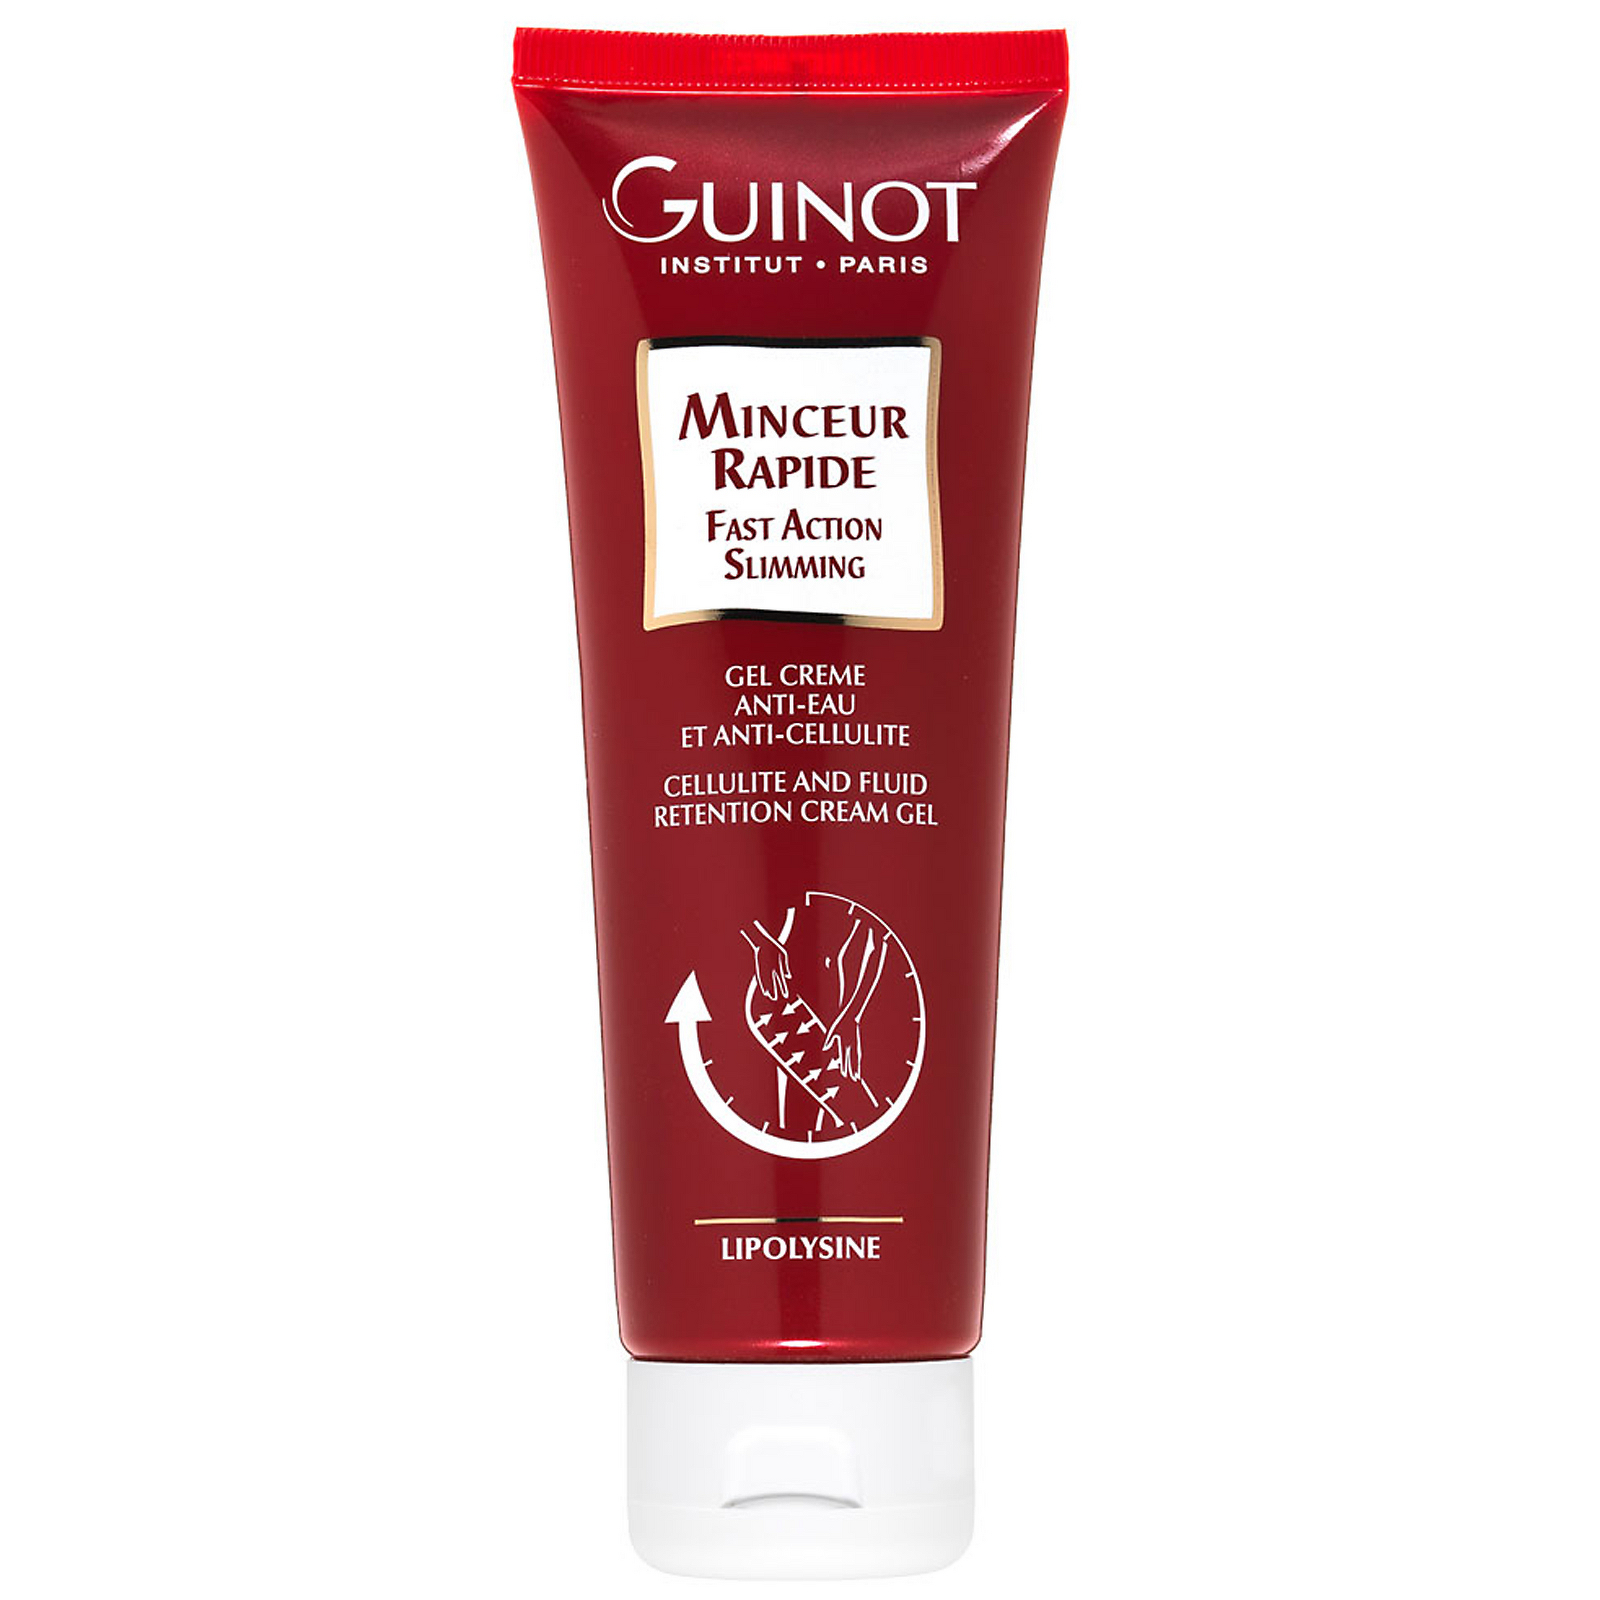 Guinot Slimming Body Care Minceur Rapide Fast Action Slimming Cream Gel 125ml / 3.7 oz.